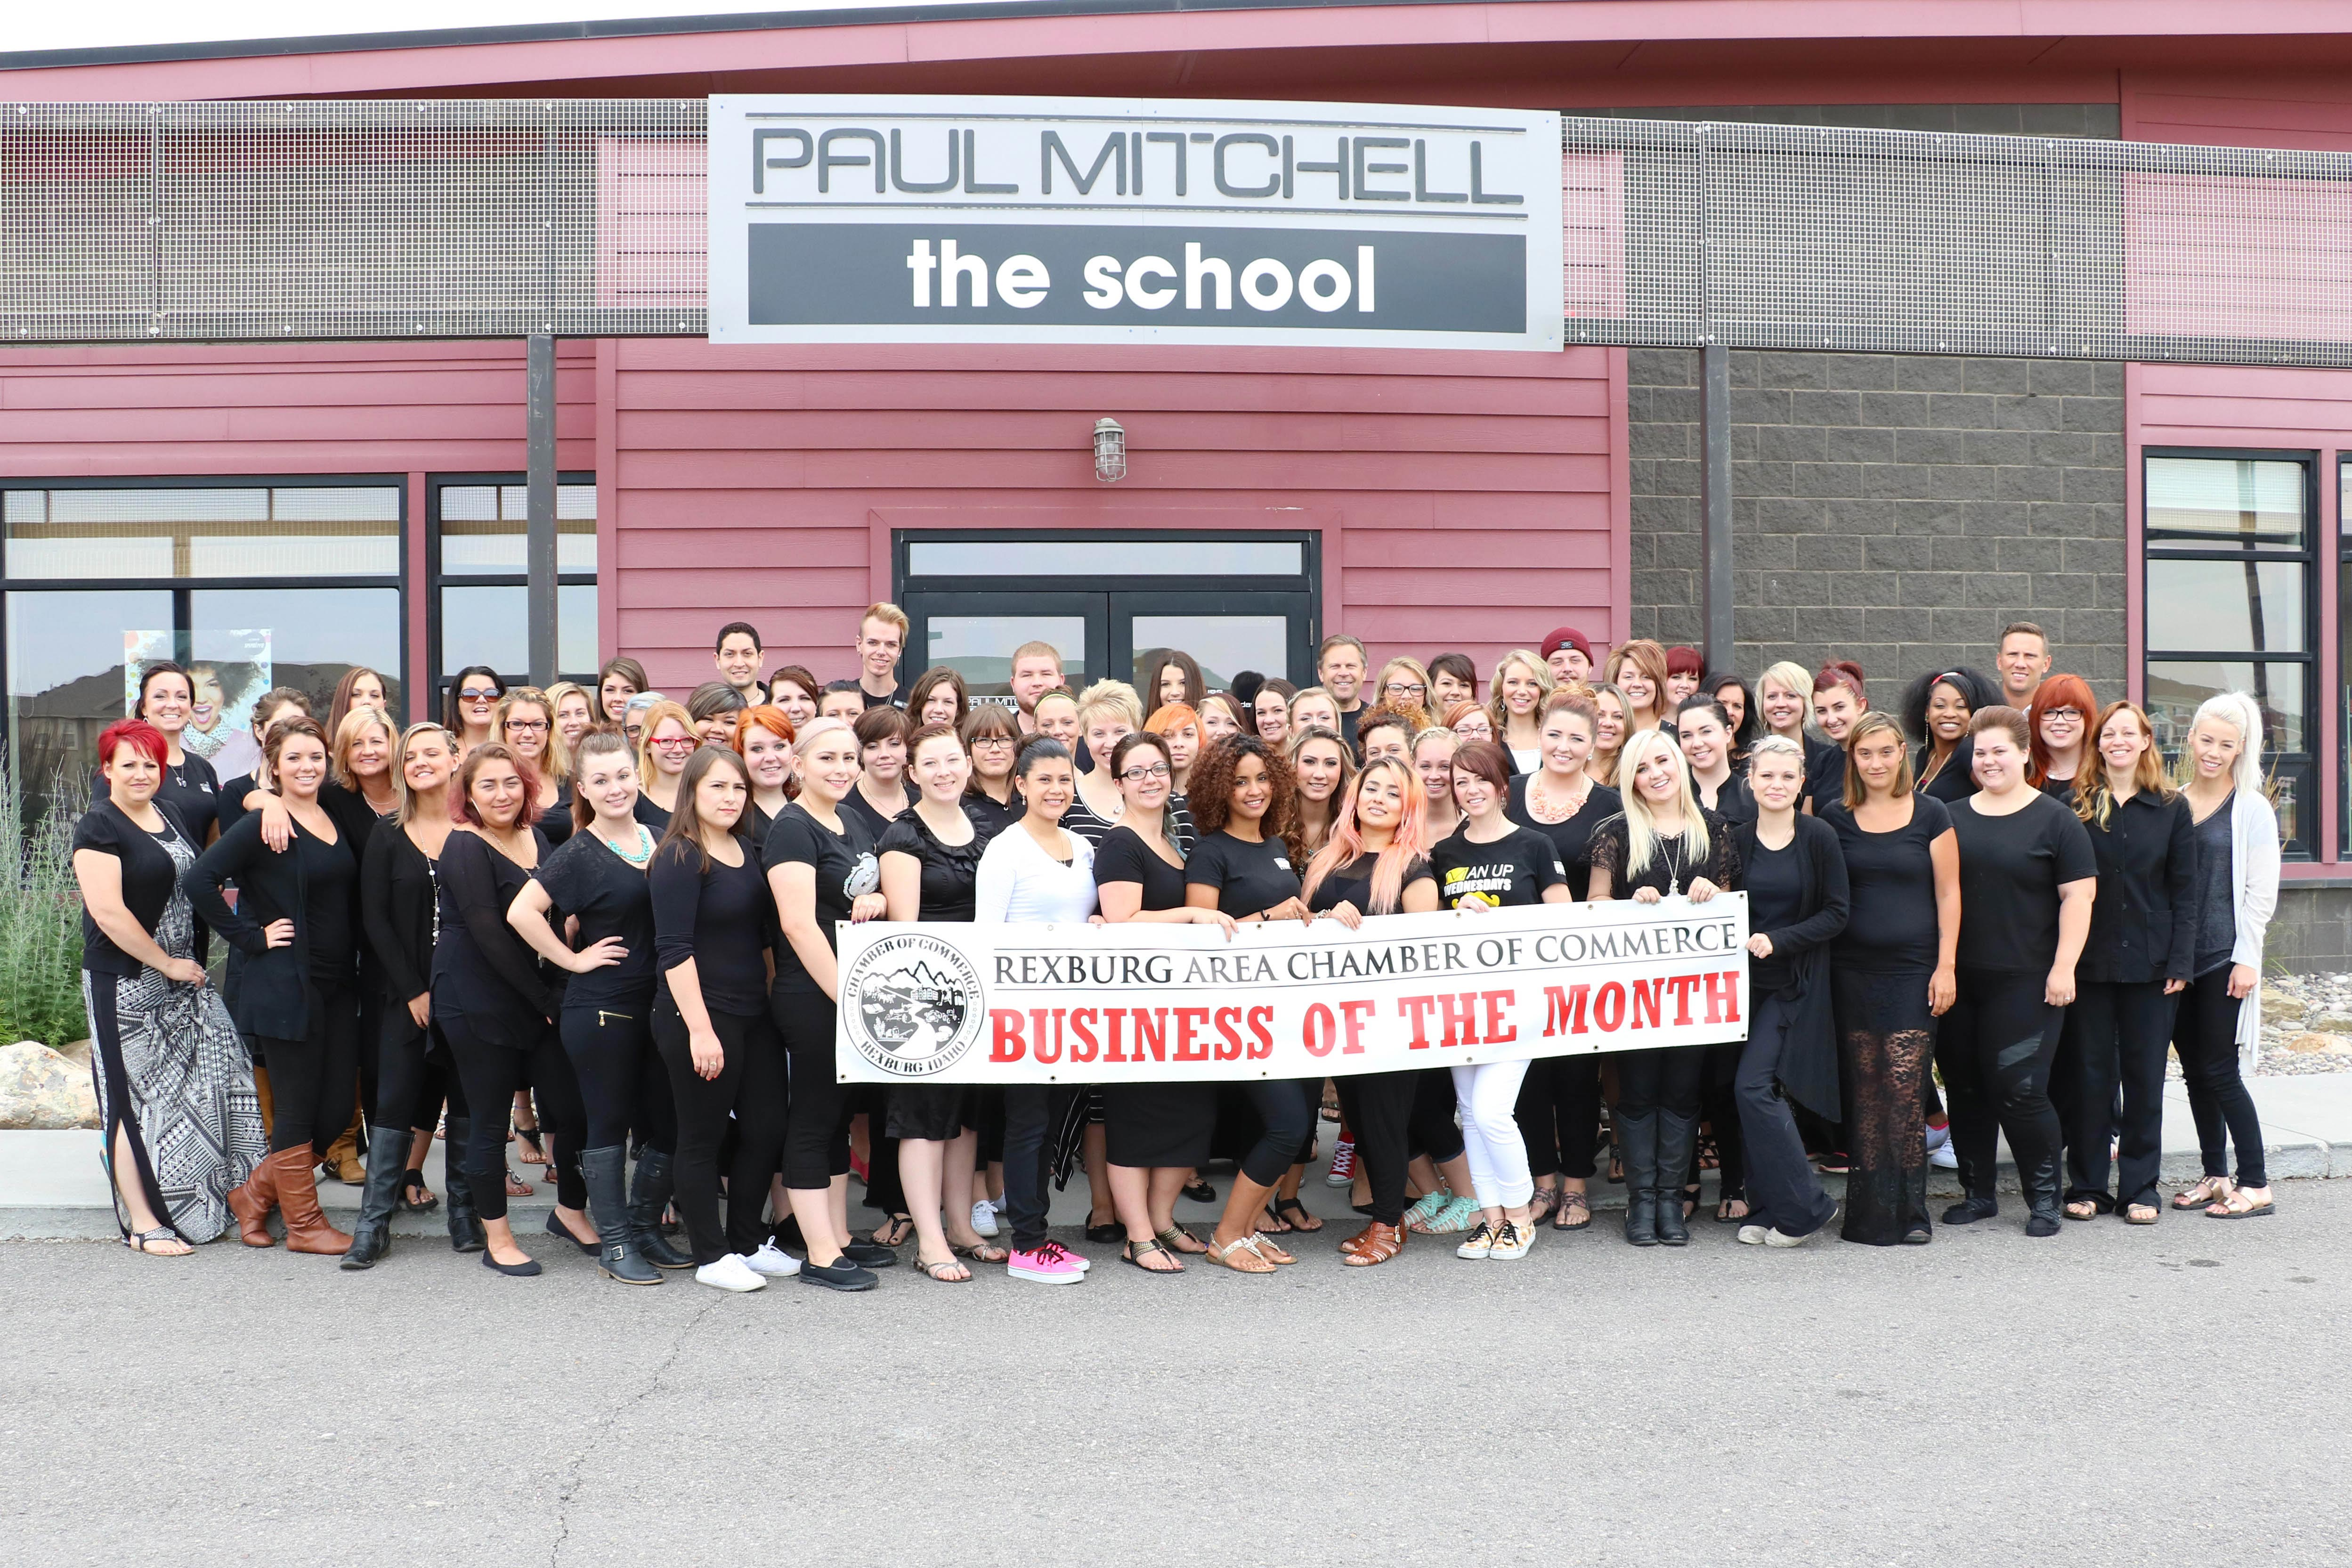 paul_mitchell-pict